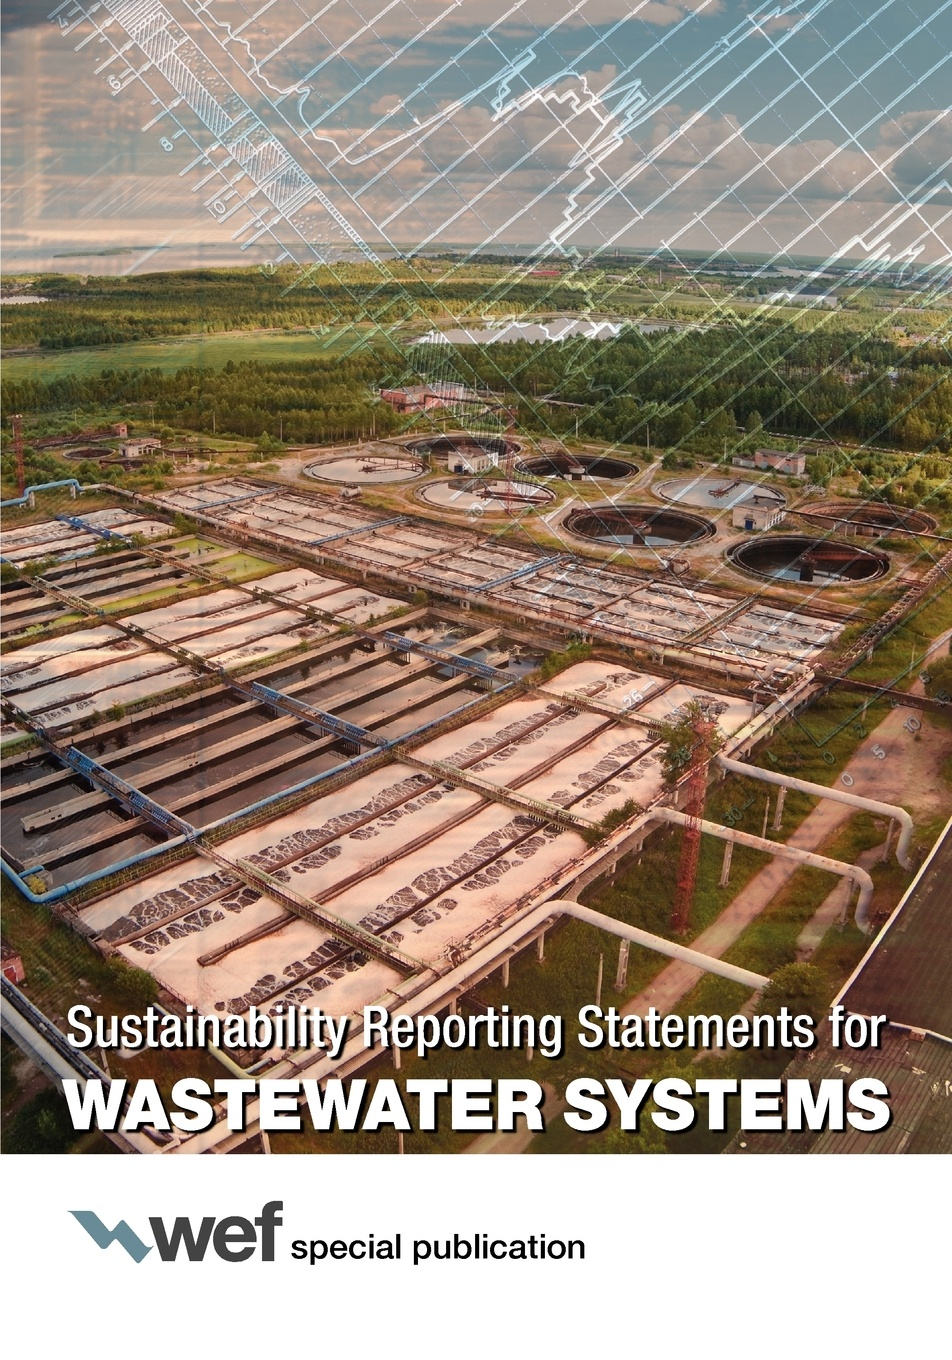 Water Environment Federation Sustainability Reporting Statements for Wastewater Systems water environment federation sustainability reporting statements for wastewater systems